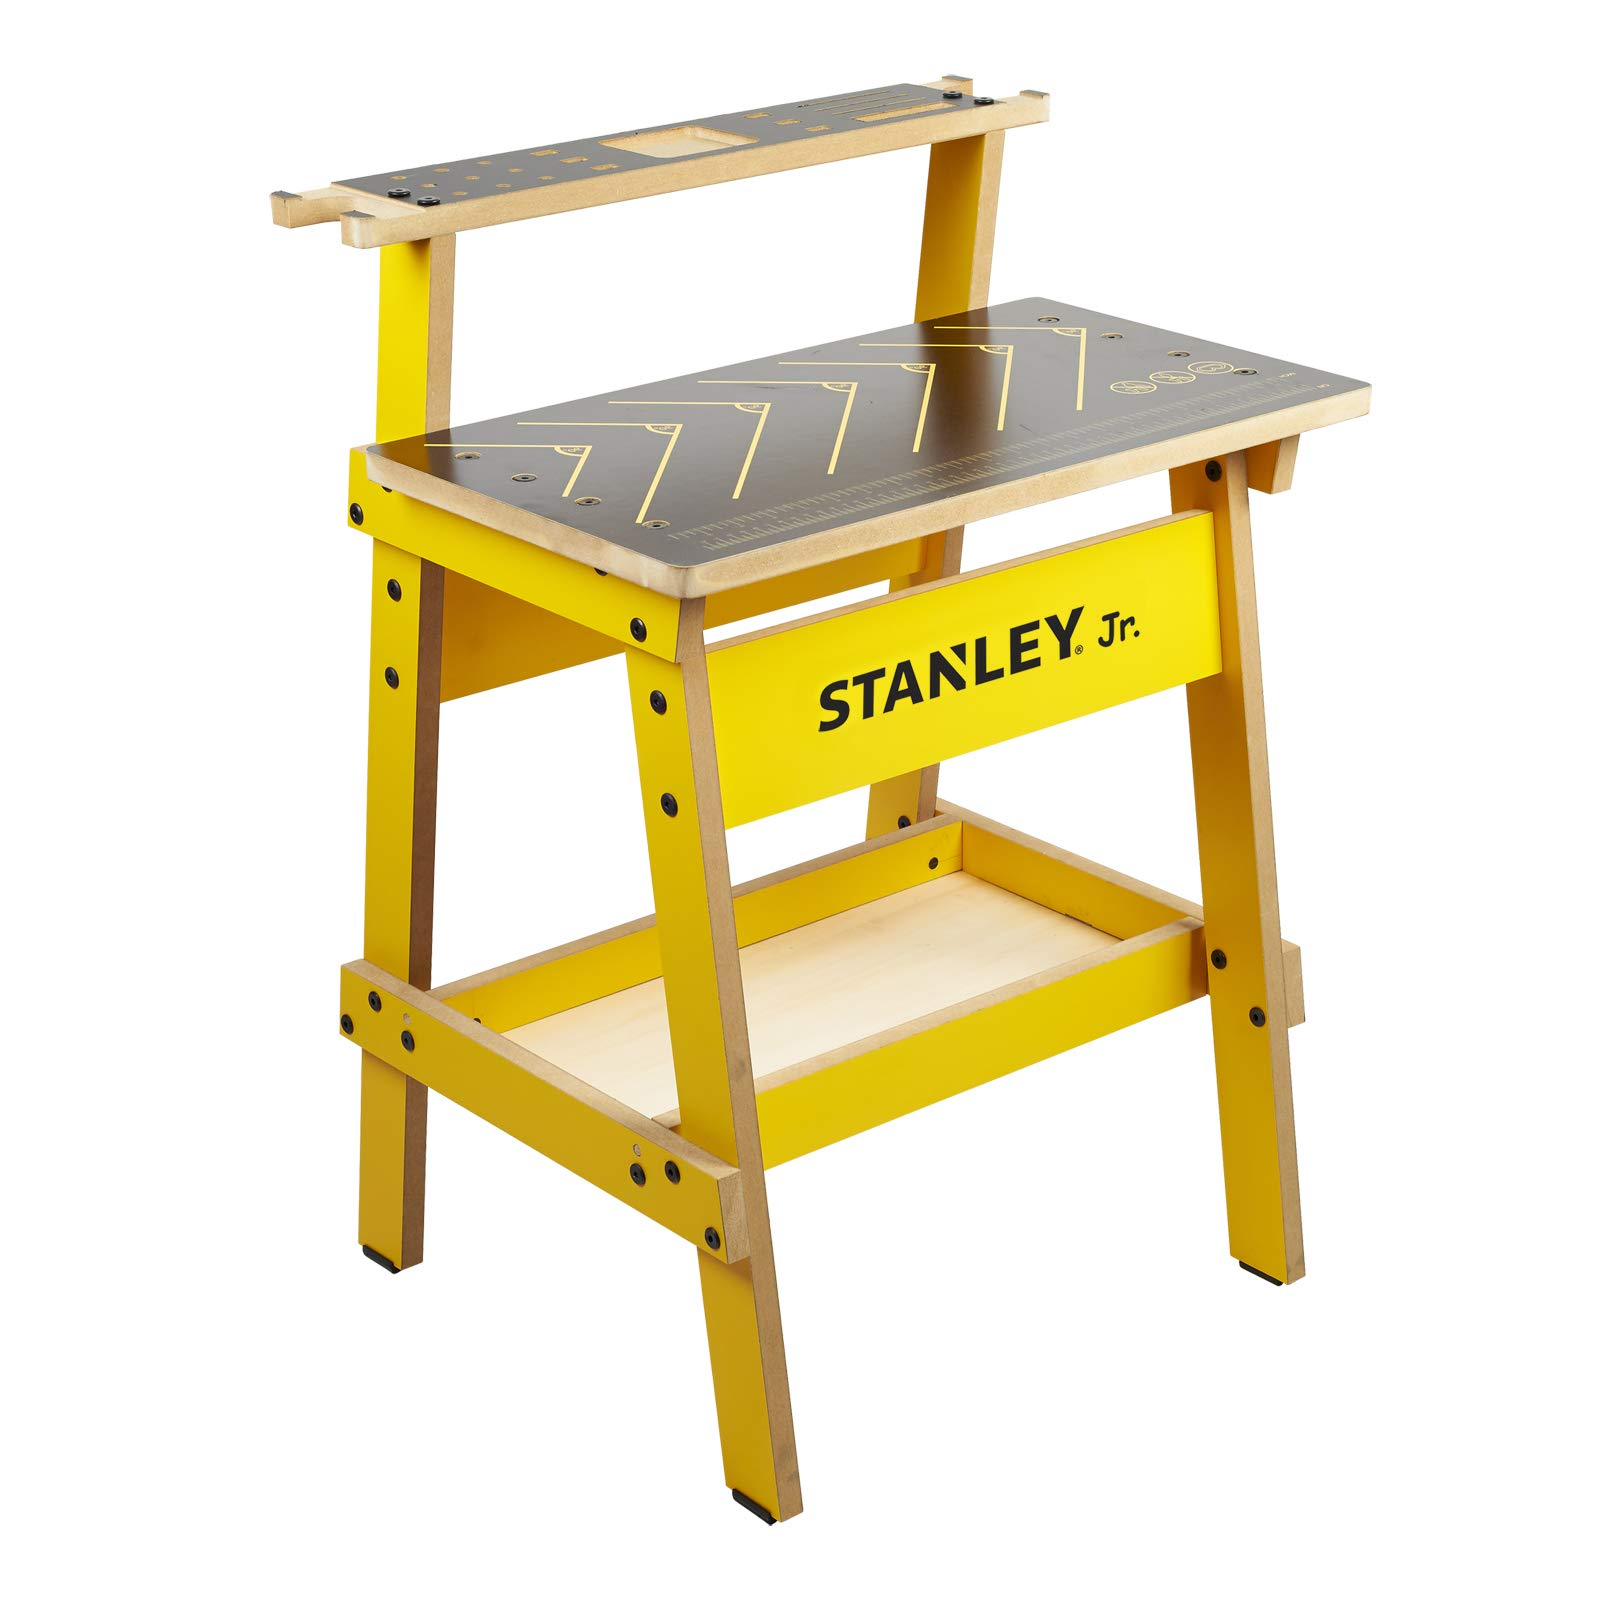 Stanley Jr. Kids Work Bench - Real Wood Craft Kits for Kids - Fun Working Bench for Kids - Kids Workshop Tool Bench - Children's Play Work Bench - Play Construction Sets for Kids